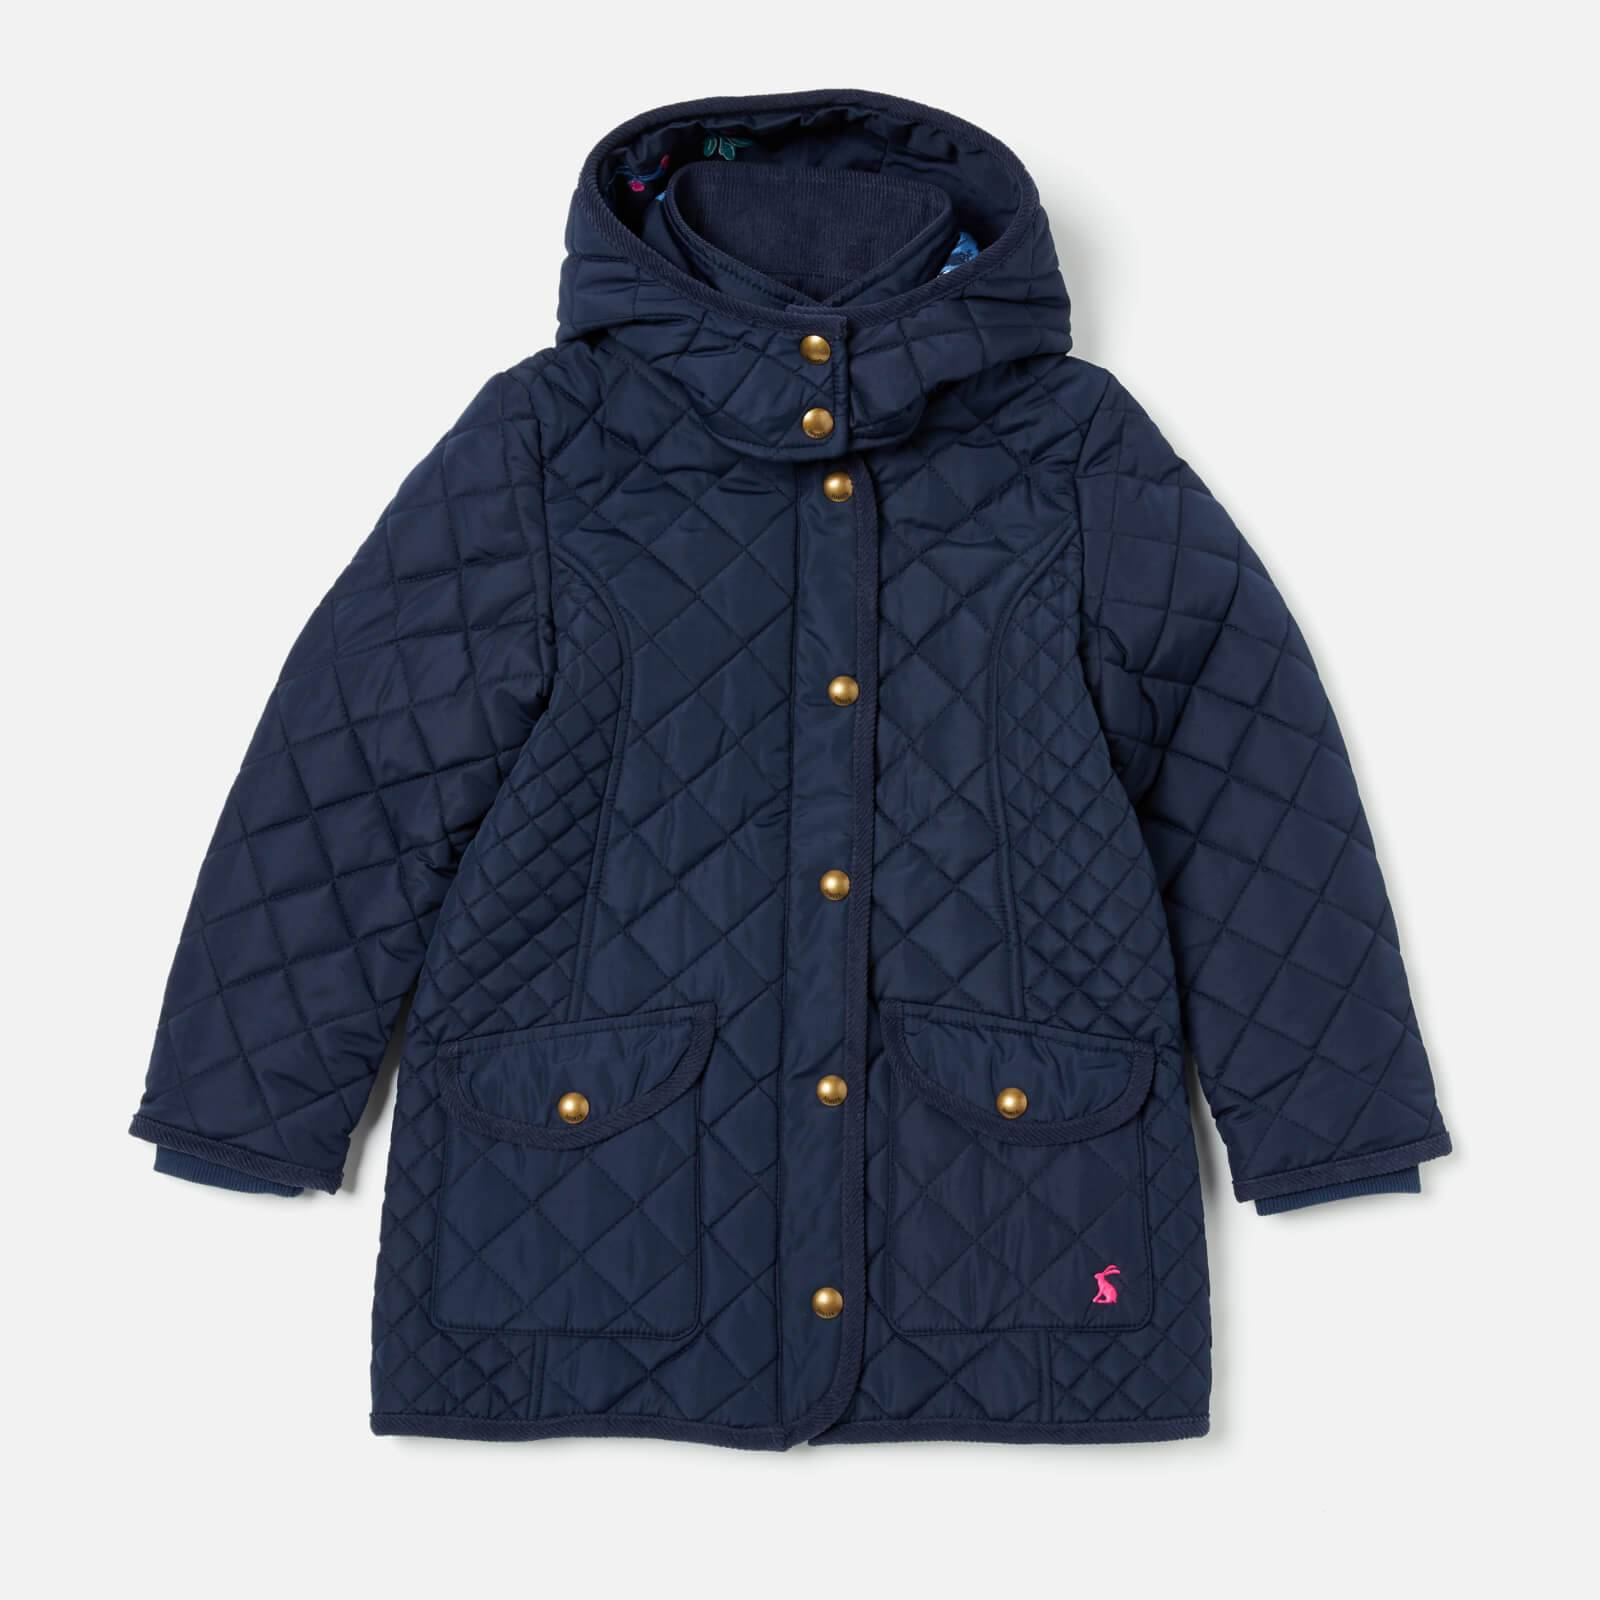 Joules Girls' Newdale Quilted Coat - French Navy - 6 Years - Blue